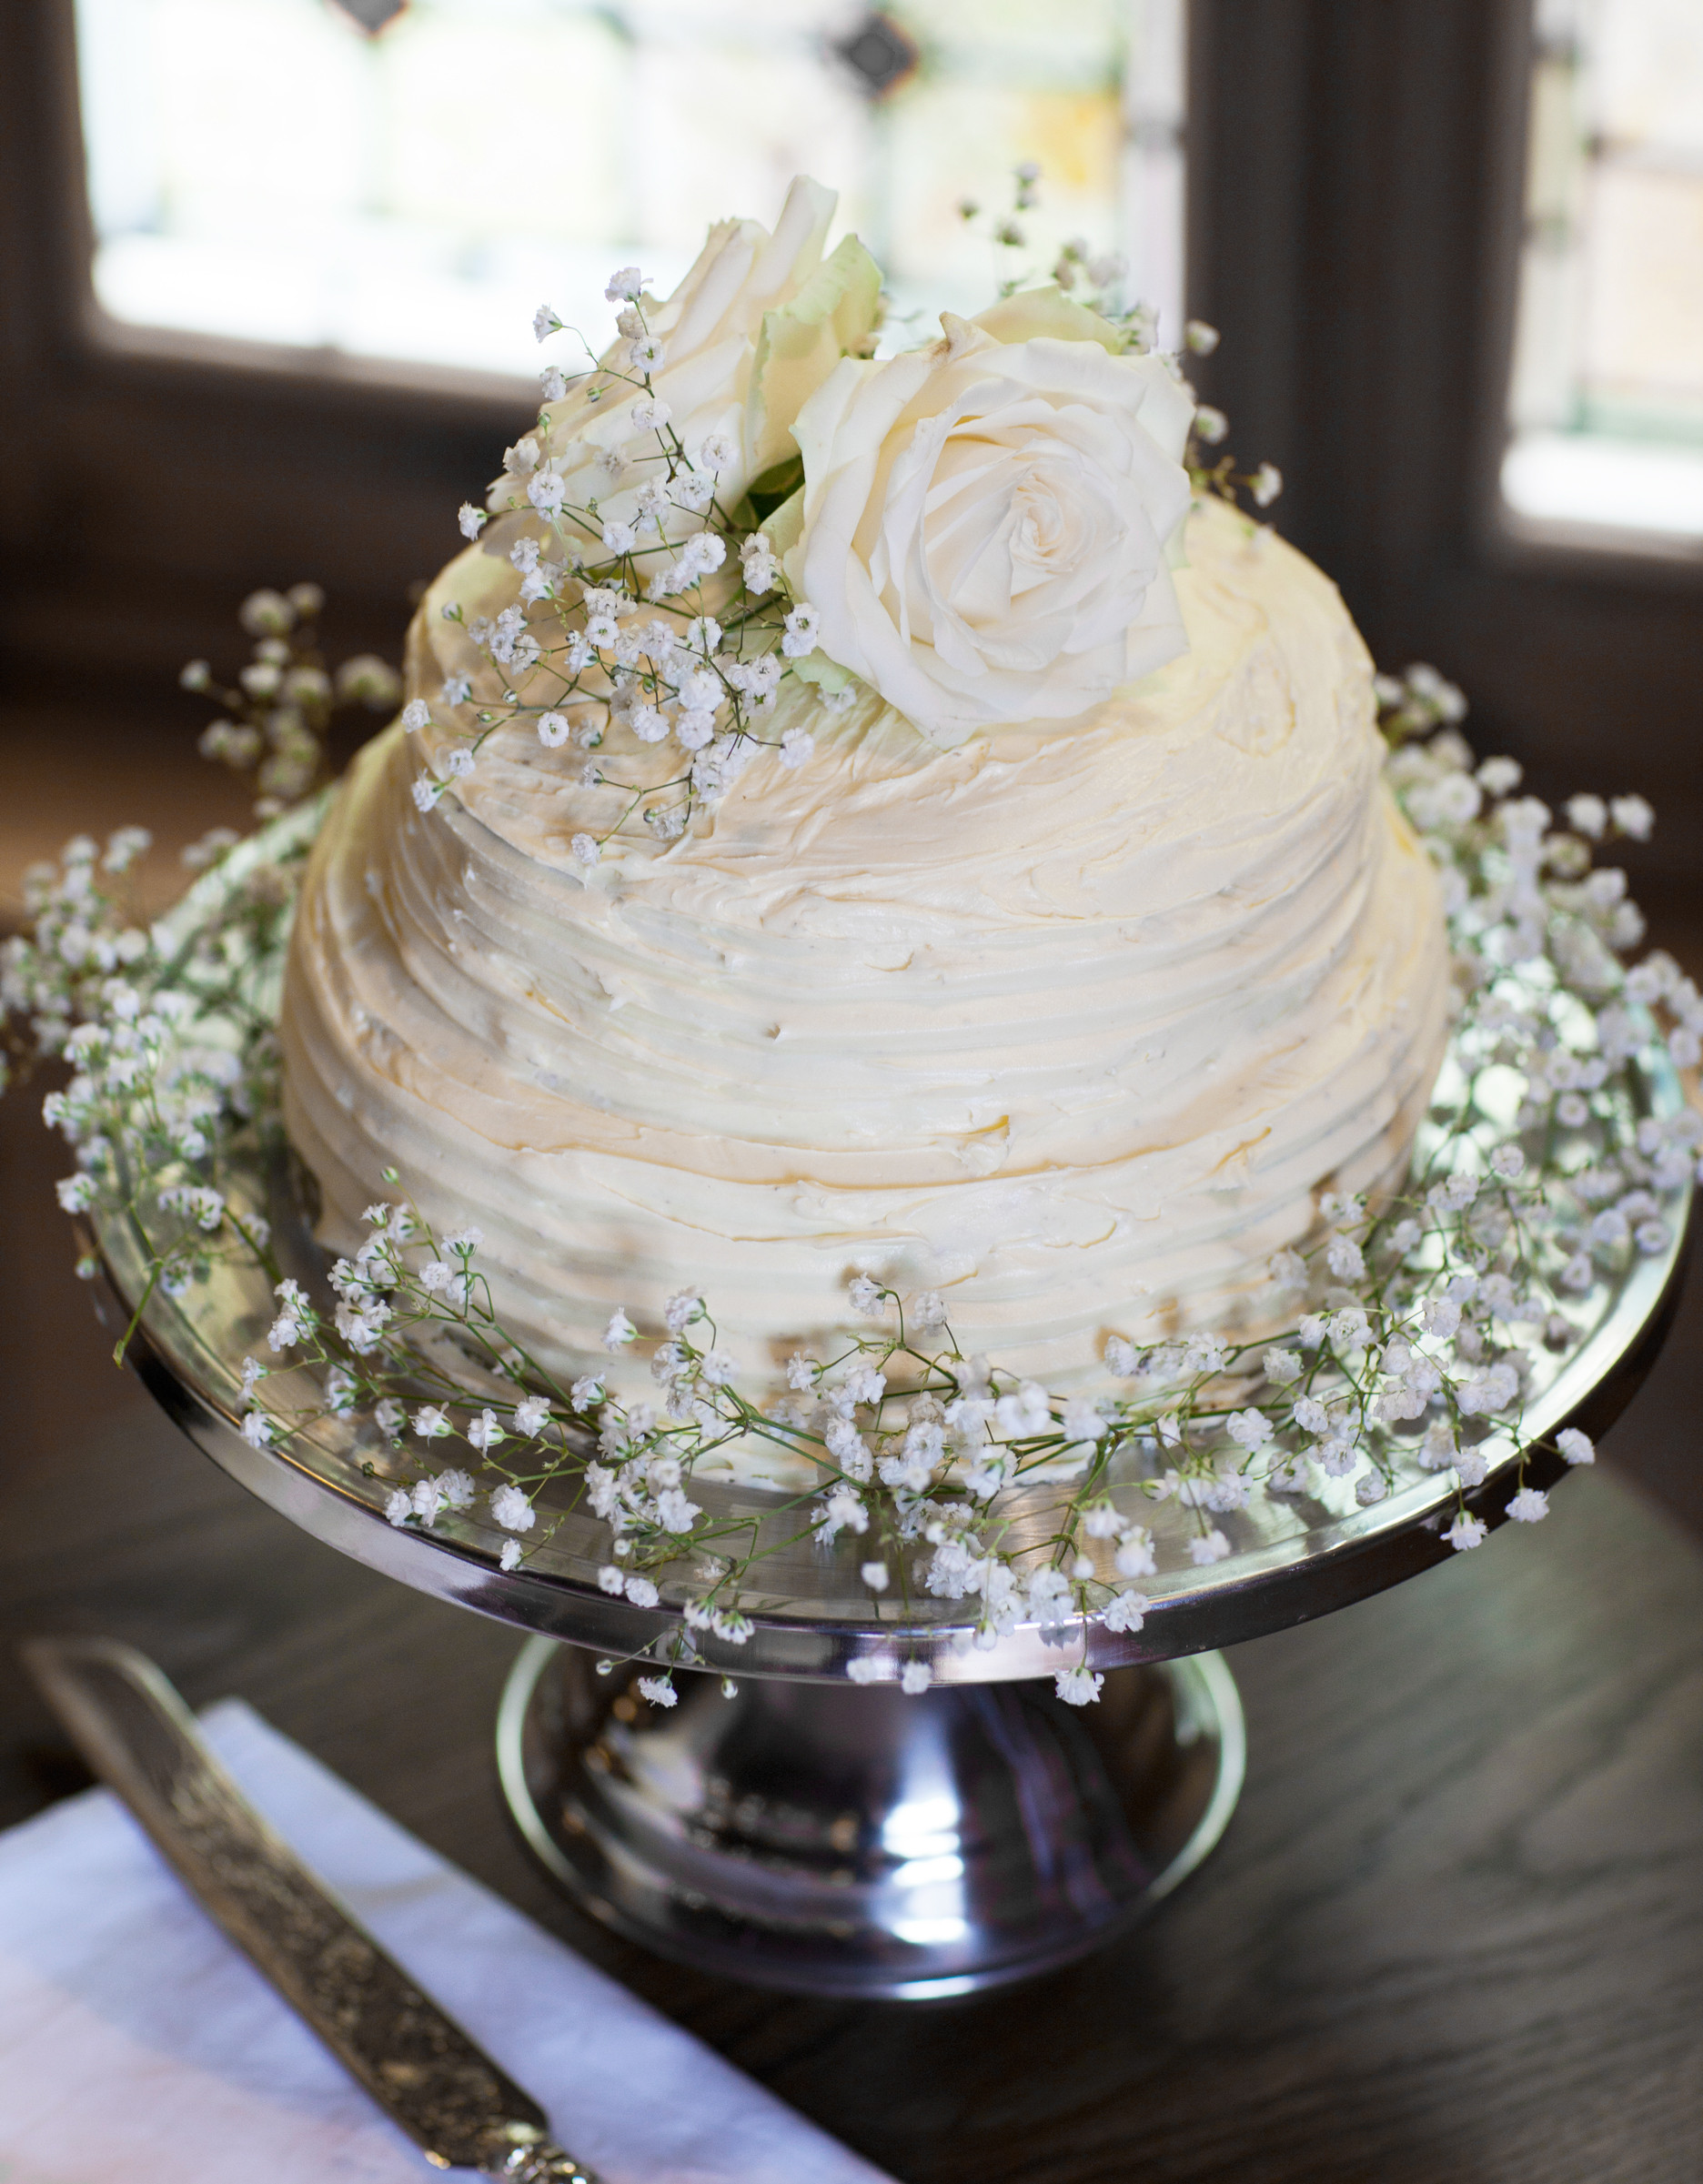 Best ideas about DIY Wedding Cake . Save or Pin DIY Wedding How to make your own wedding cake Now.